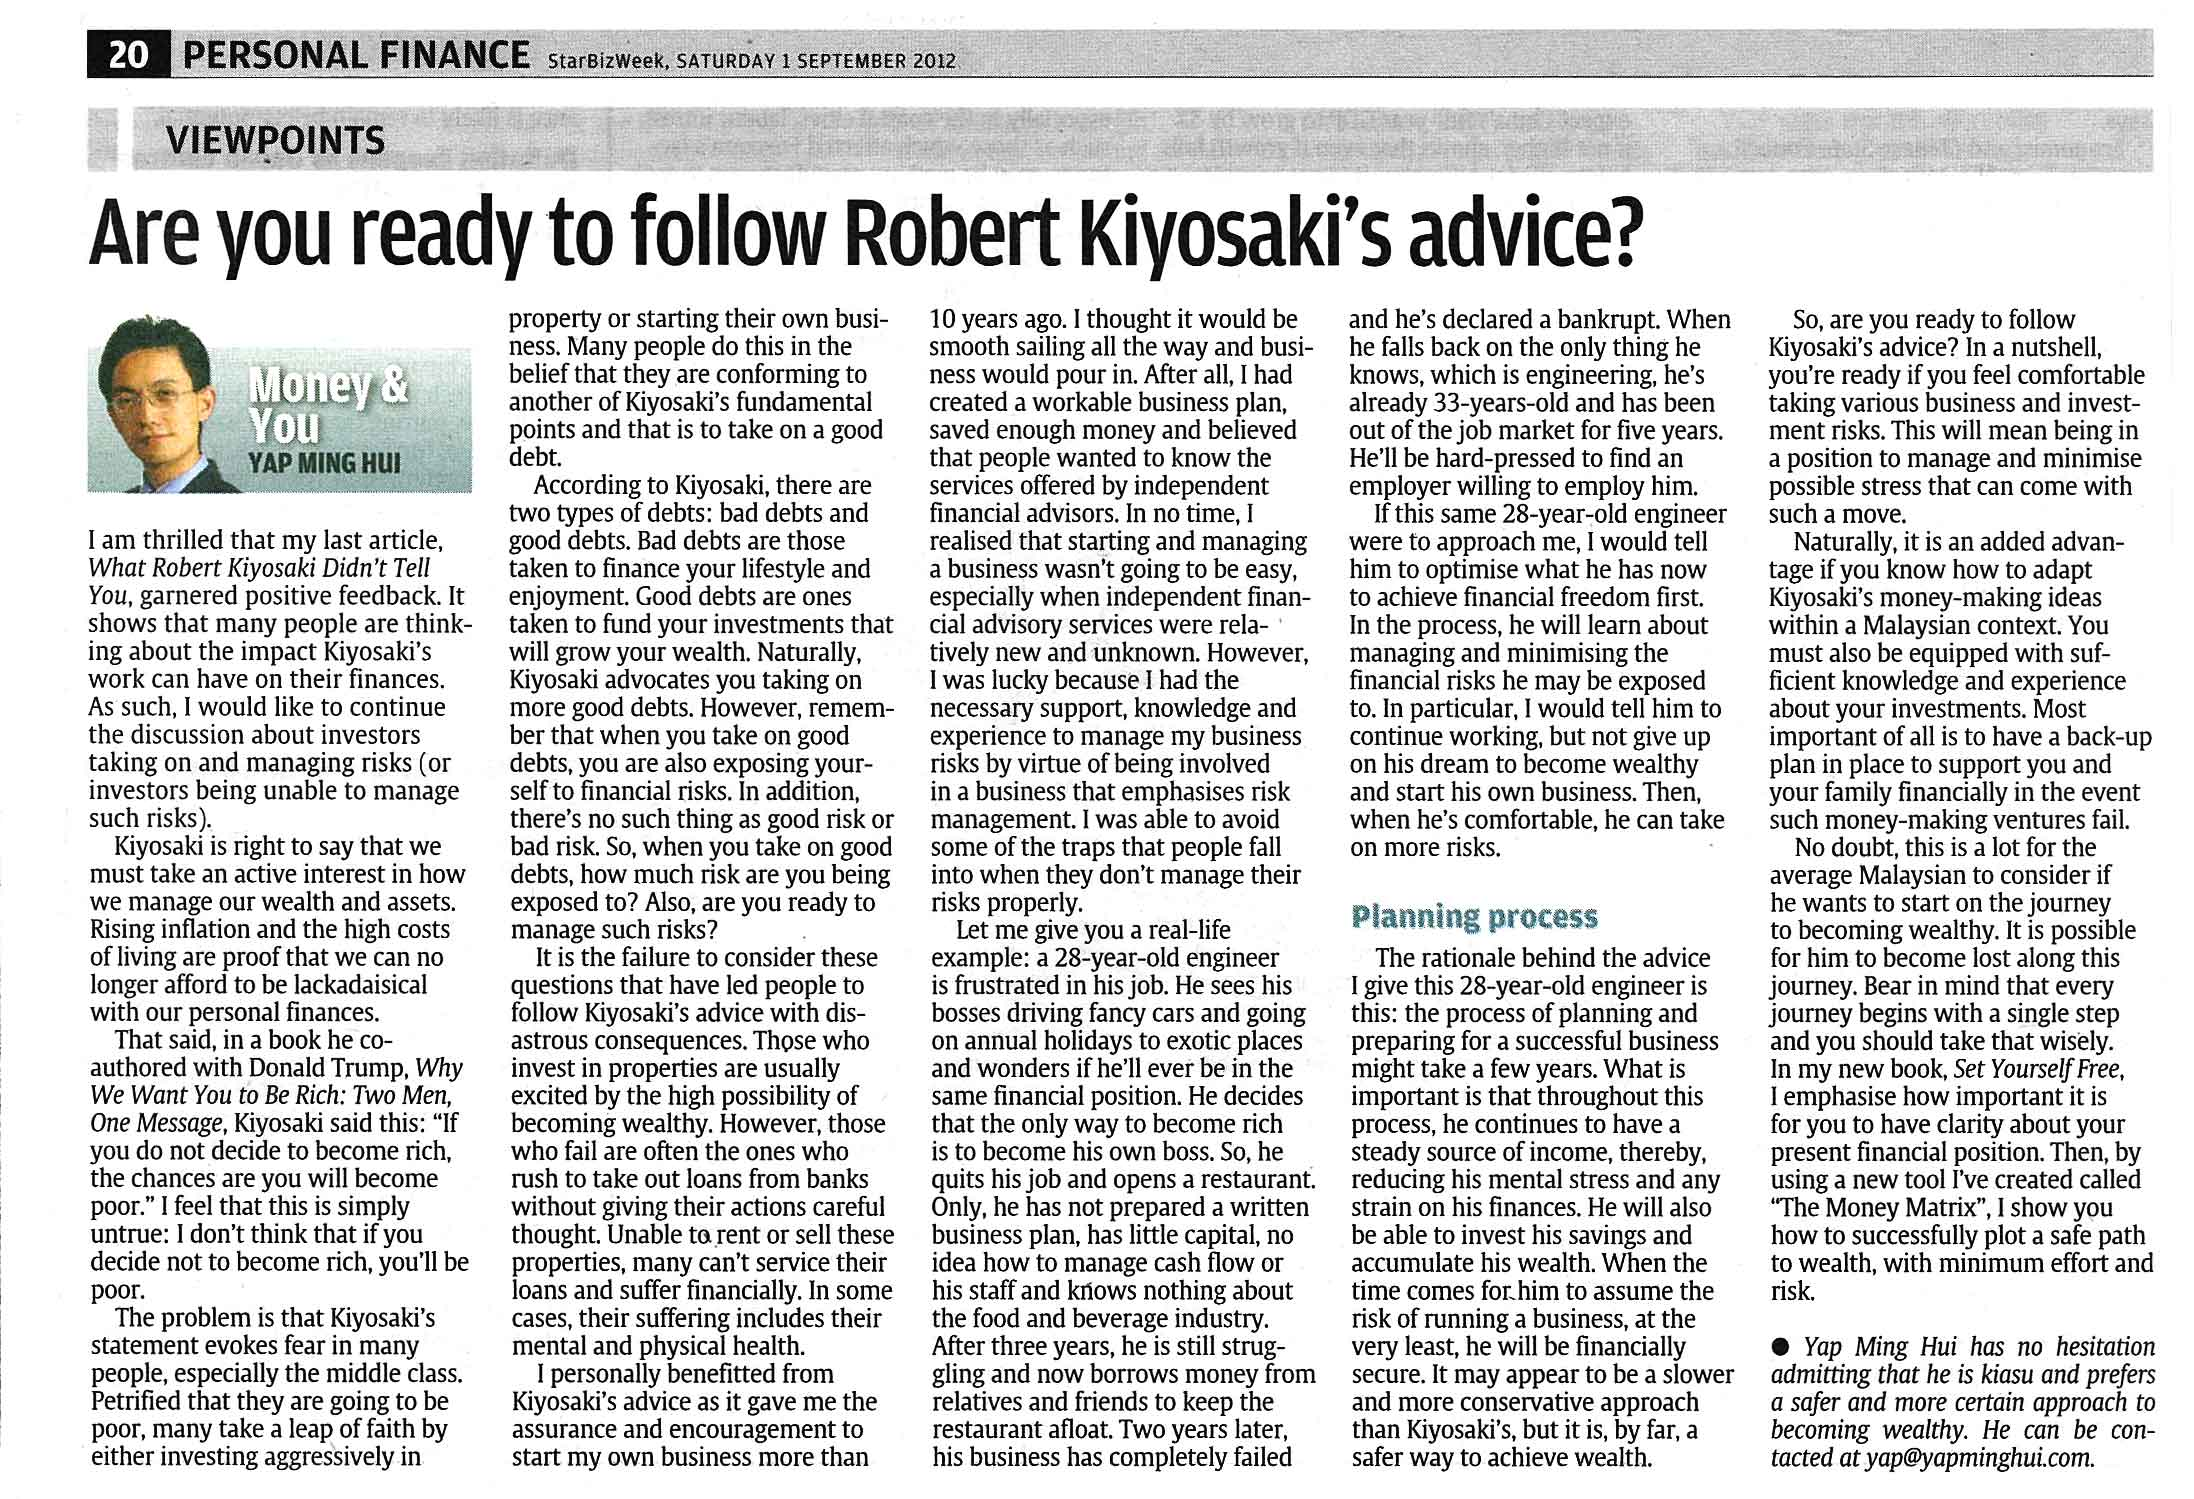 Are You Ready To Follow Robert Kiyosaki's Advice - 01 Sep 2012